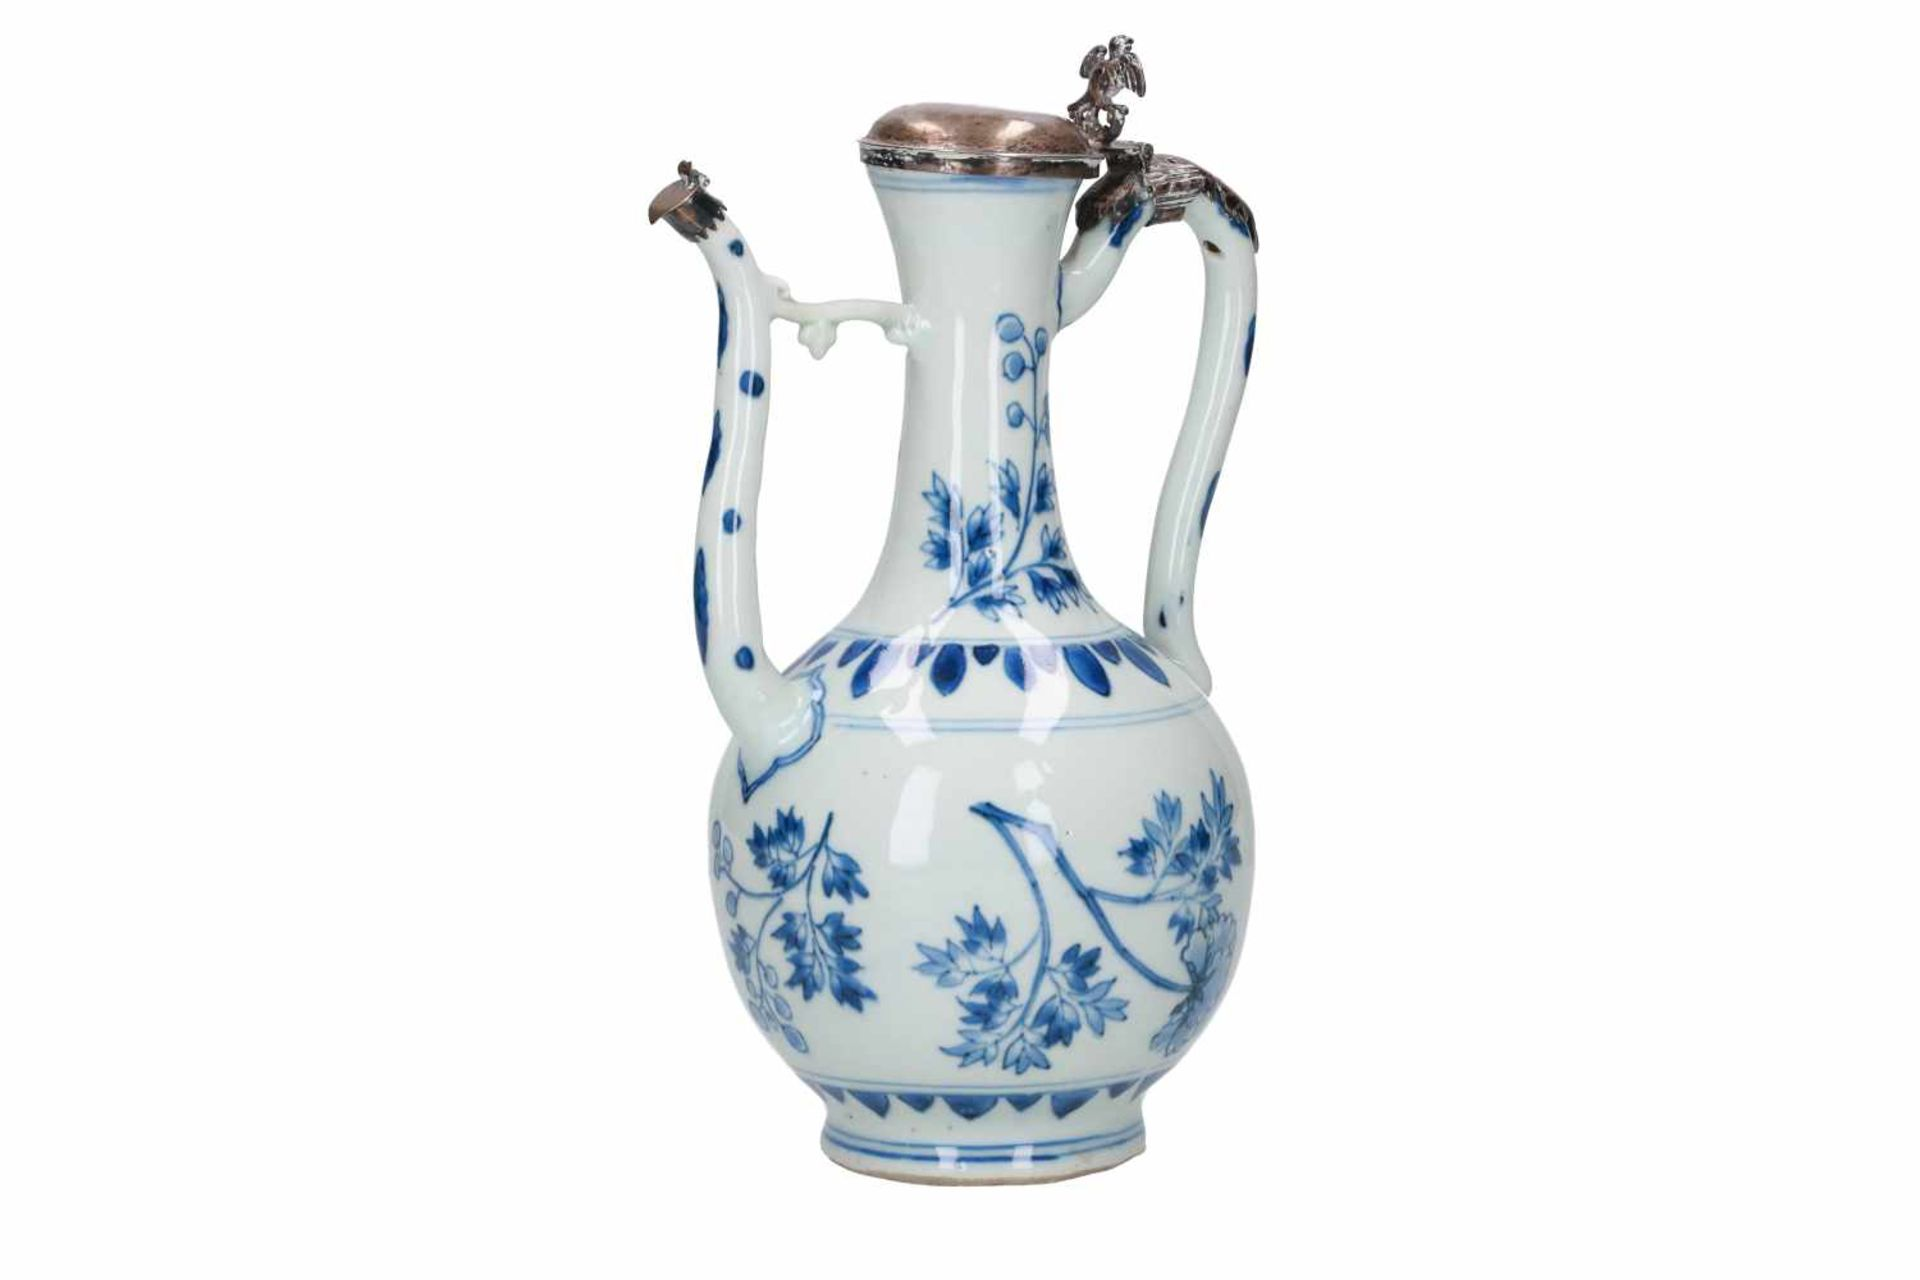 A blue and white porcelain jug with silver mounting, decorated with flowers and leaves. Unmarked.